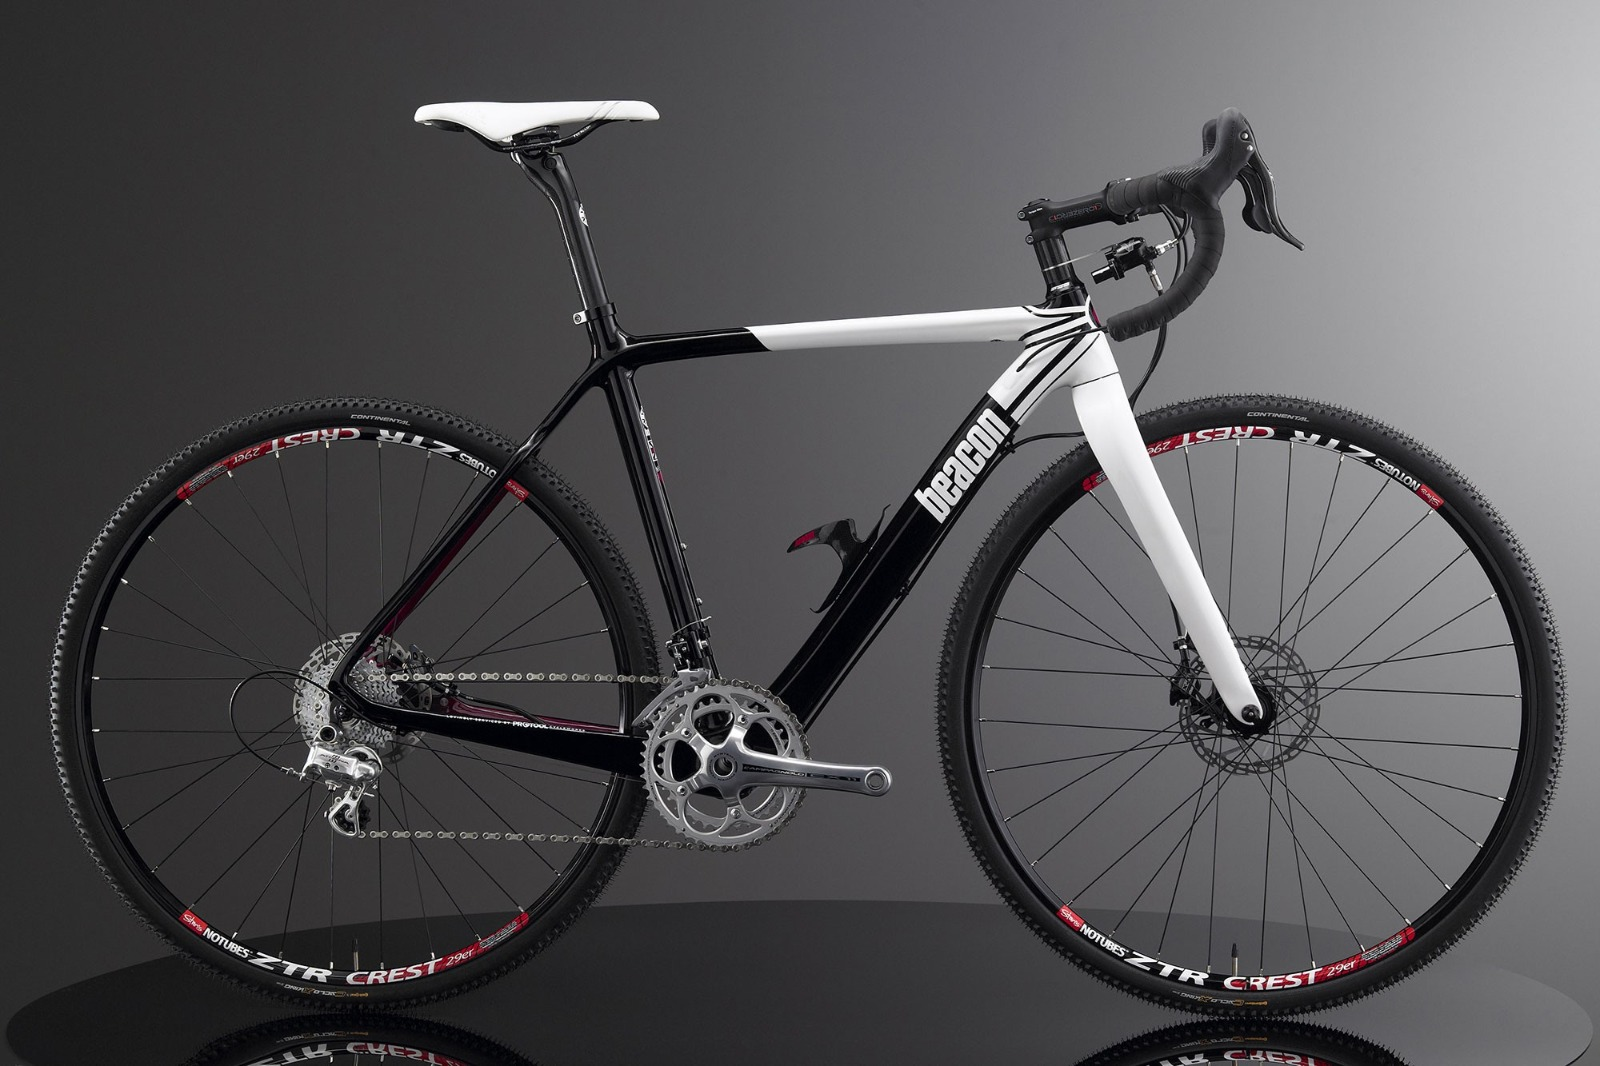 1 x Beacon Model BF-45, Size 580, Carbon Fibre Bike Frame in Black & White. - Image 2 of 3